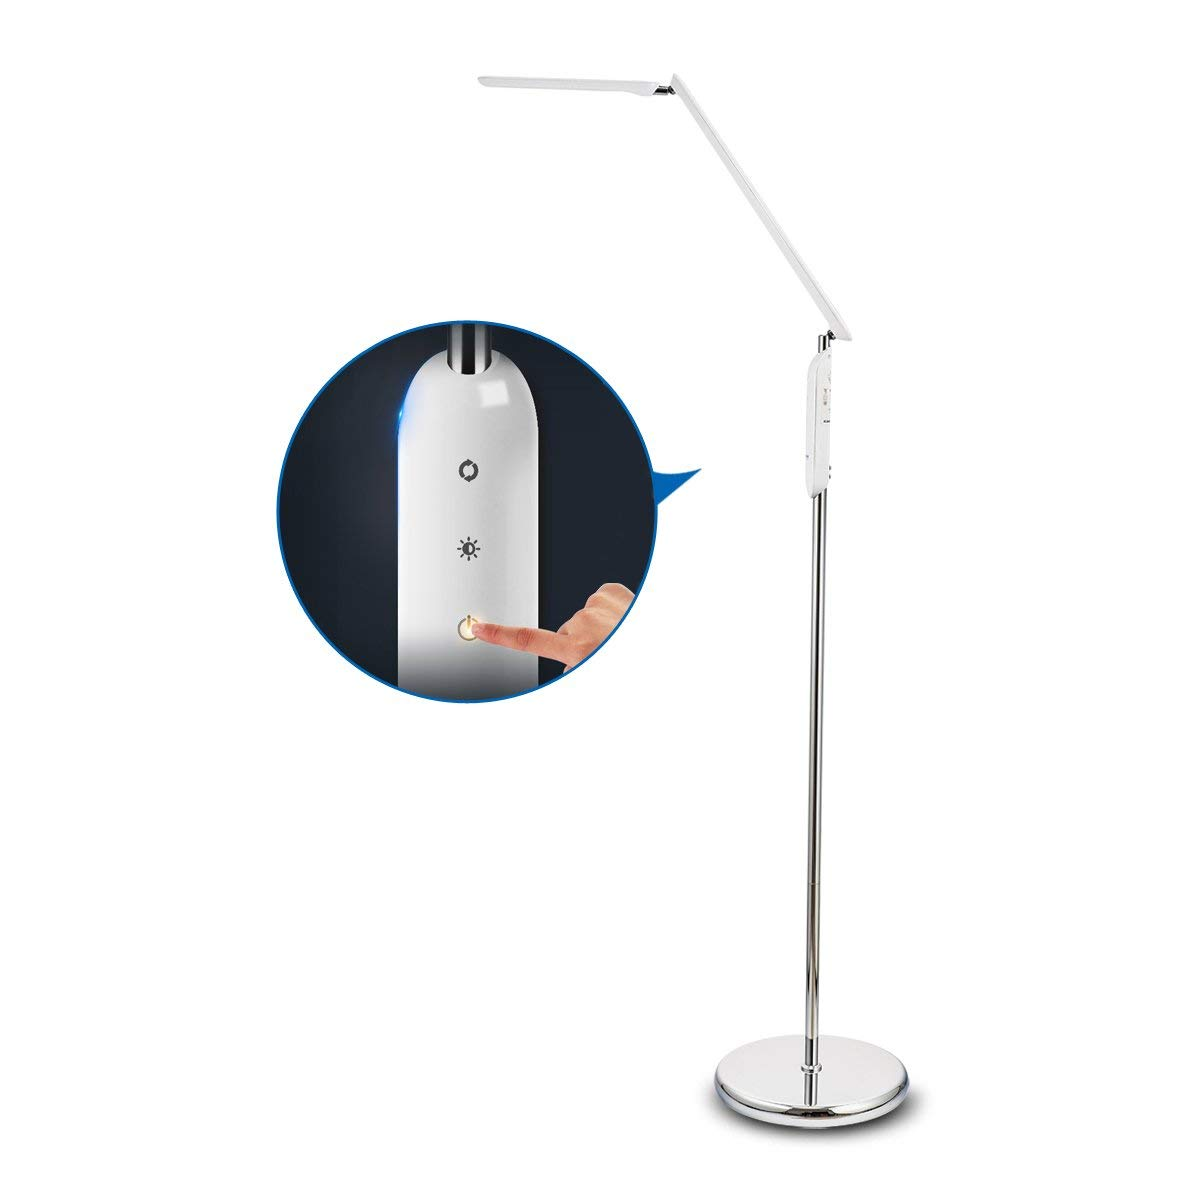 Dimmable LED Floor Lamp, Modern Touch-Sensitive Switch Standing Light, Eye-Care LED Reading Light, Stable and Anti Metal Base, 360 Degree Rotatable Shades for Living Room, Bedroom Or Office